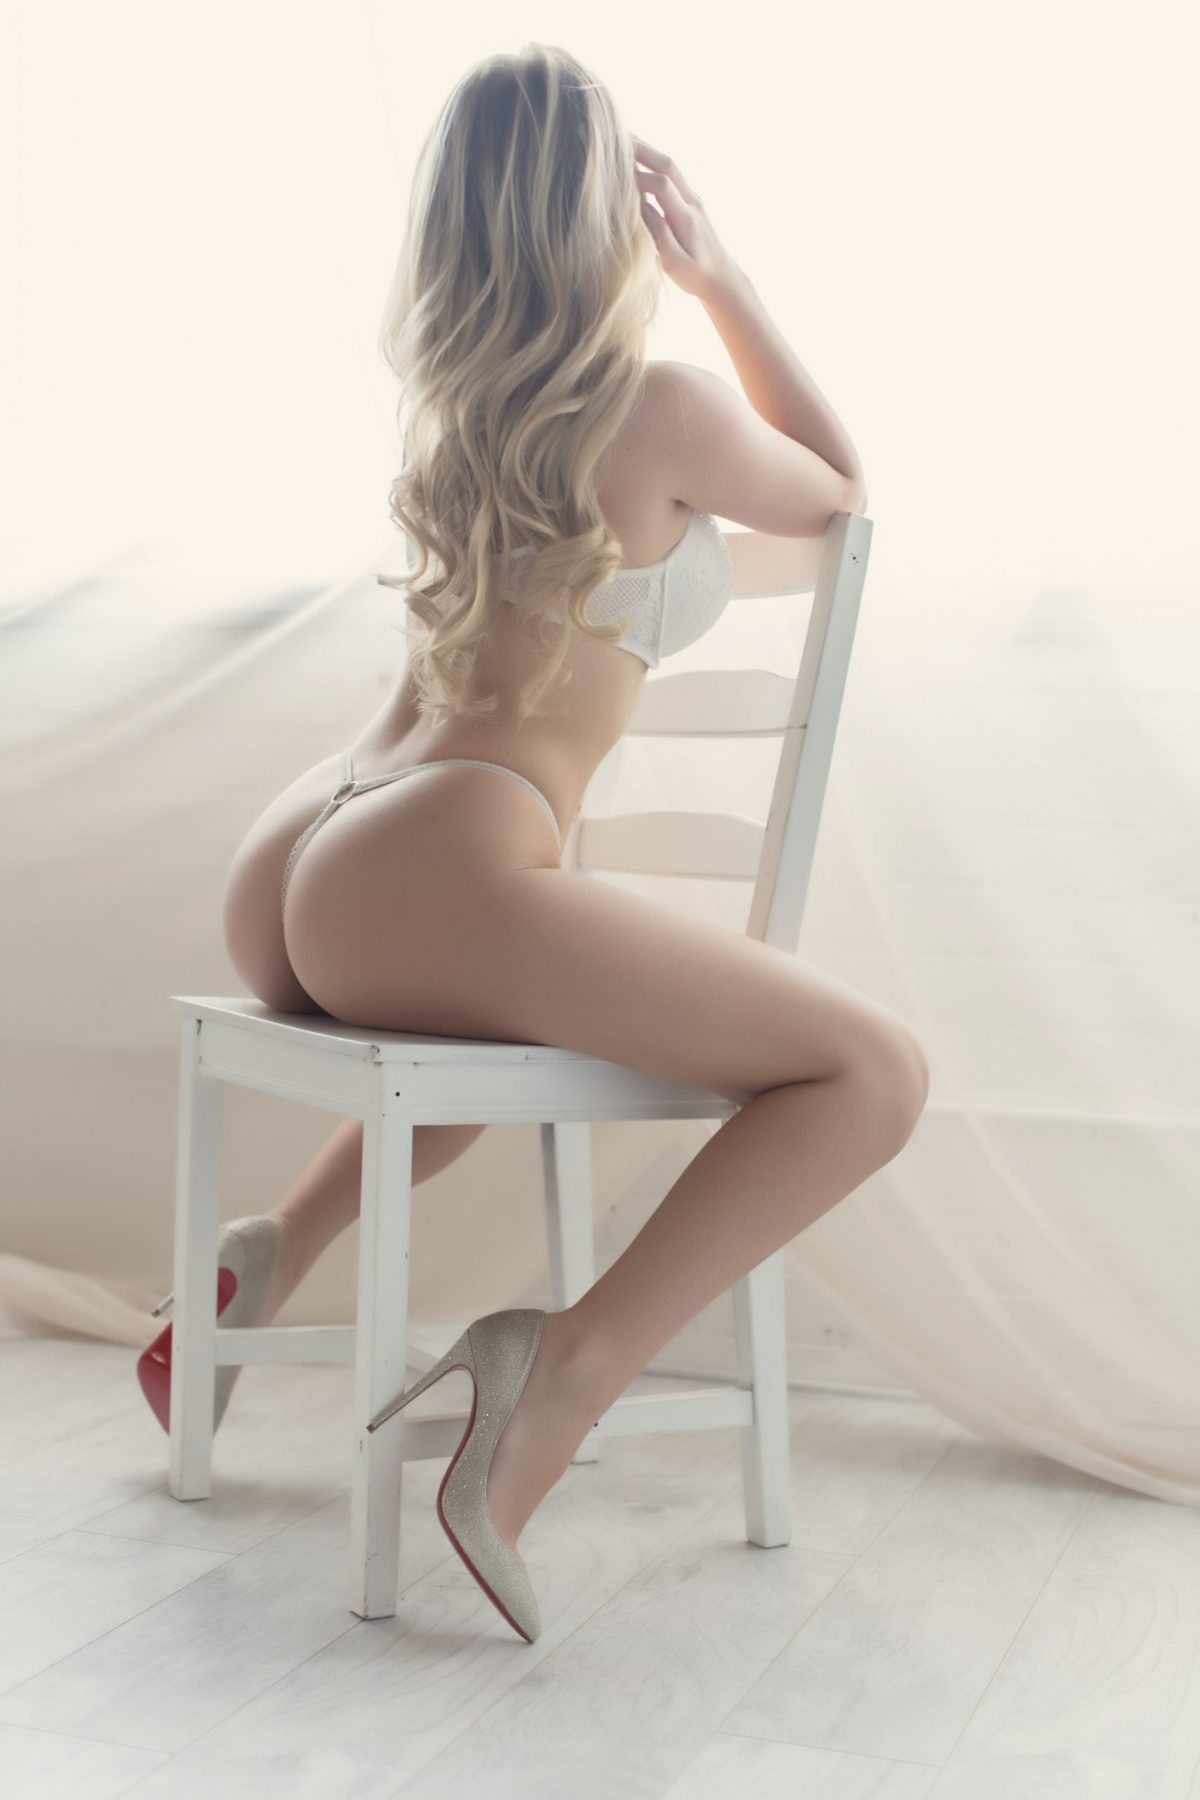 Toronto escorts companion upscale Pilar Interests Duo Disability-friendly Non-smoking Age Young Figure Slender Petite Breasts Natural Hair Blonde Ethnicity European Tattoos None Video Returning